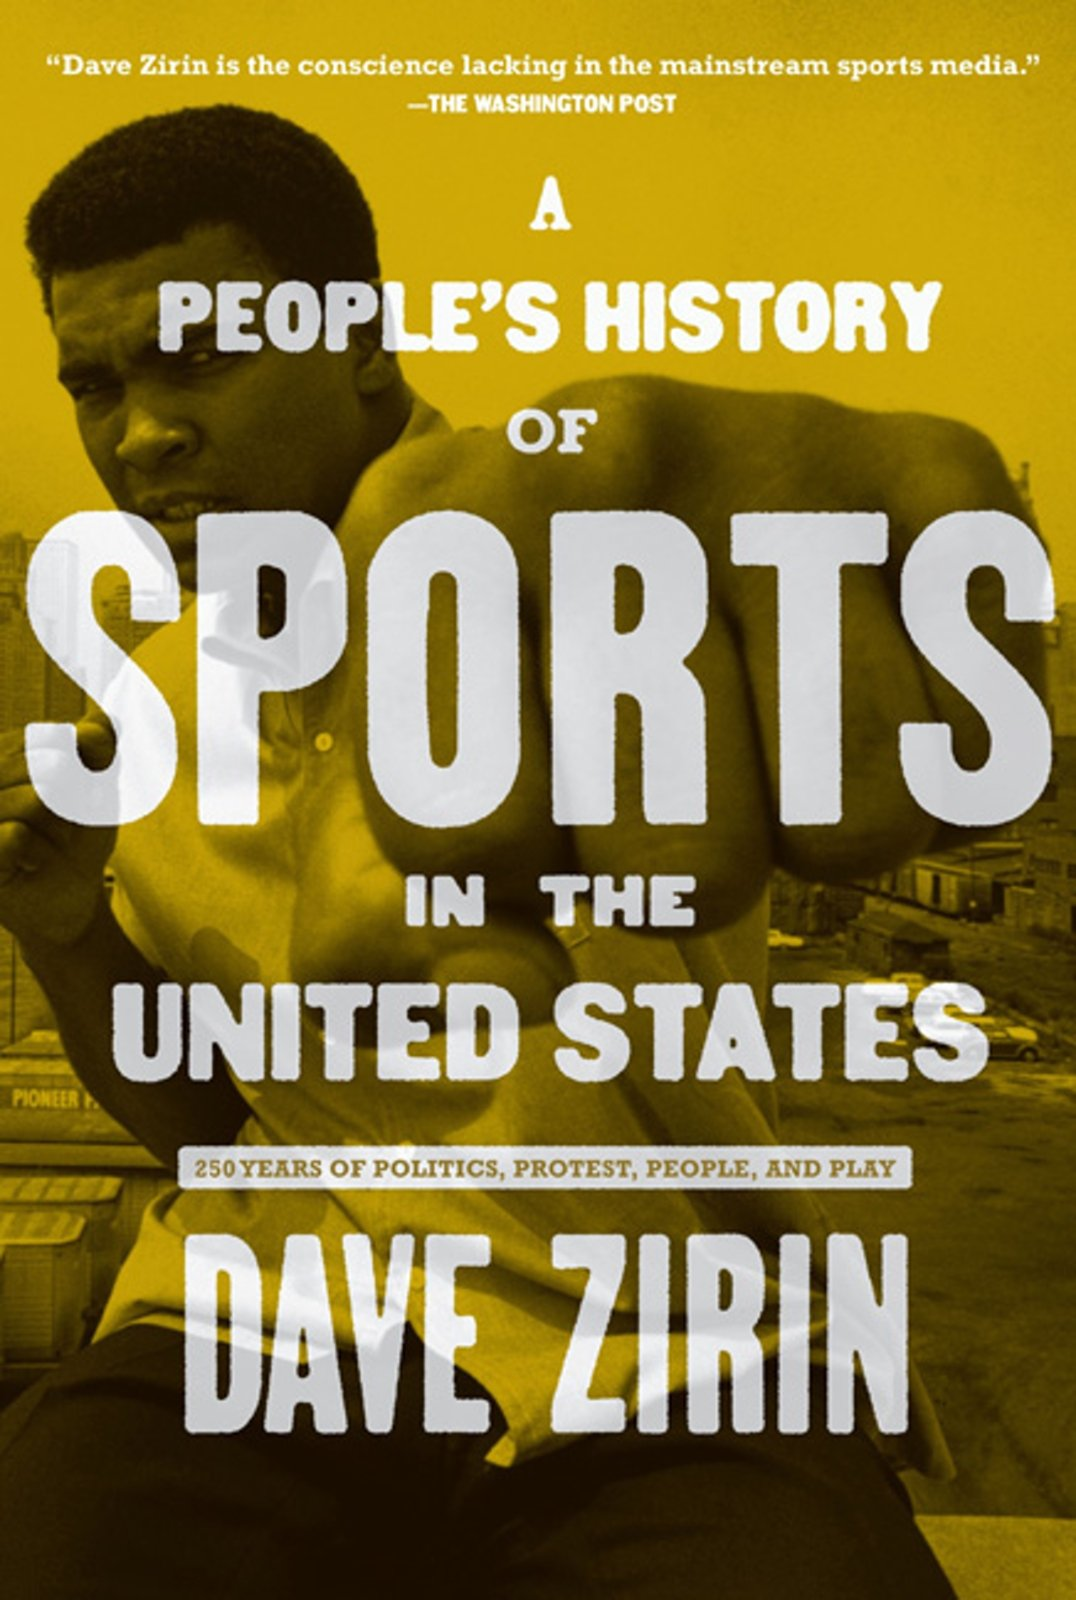 Download People's History of Sports in the United States: 250 Years of Politics, Protest, People, and Play (New Press People's History) pdf